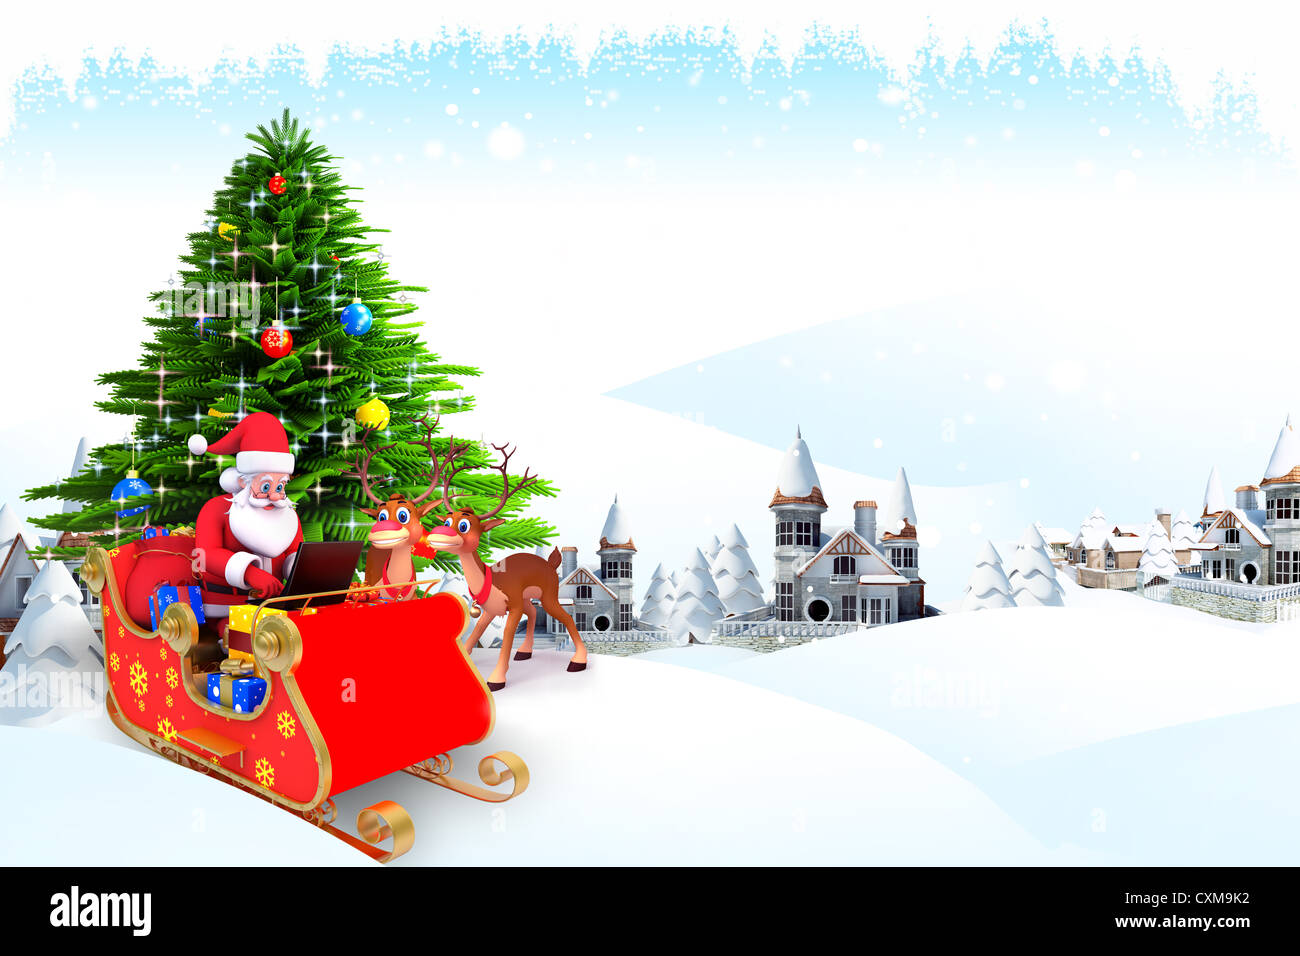 Christmas Tree Santa Iceland Stock Photos & Christmas Tree Santa ...